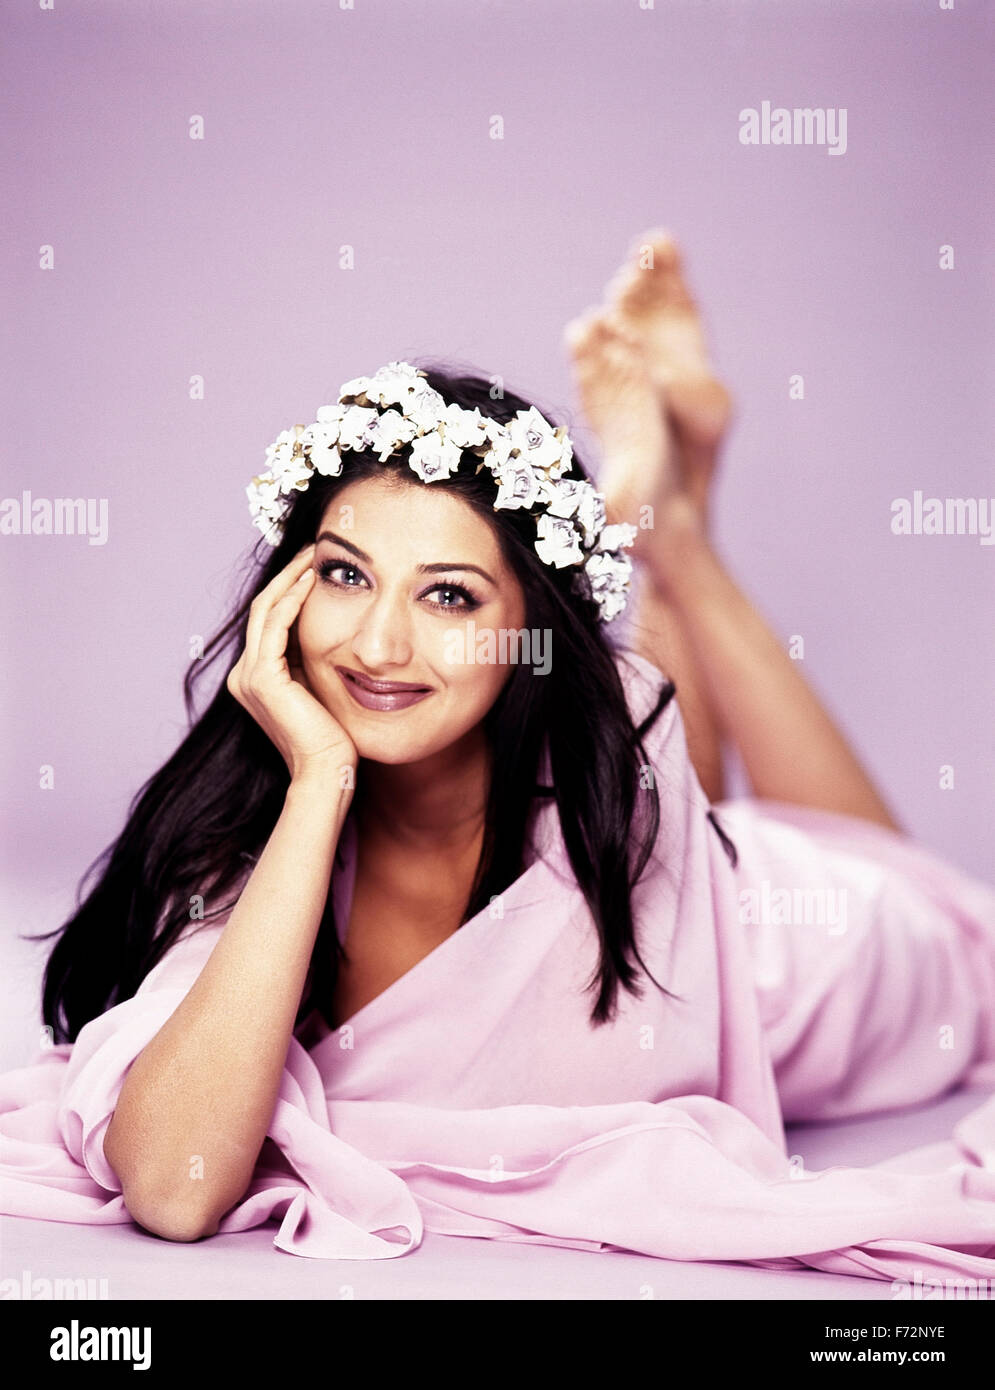 Sonali bendre adult photos images 114